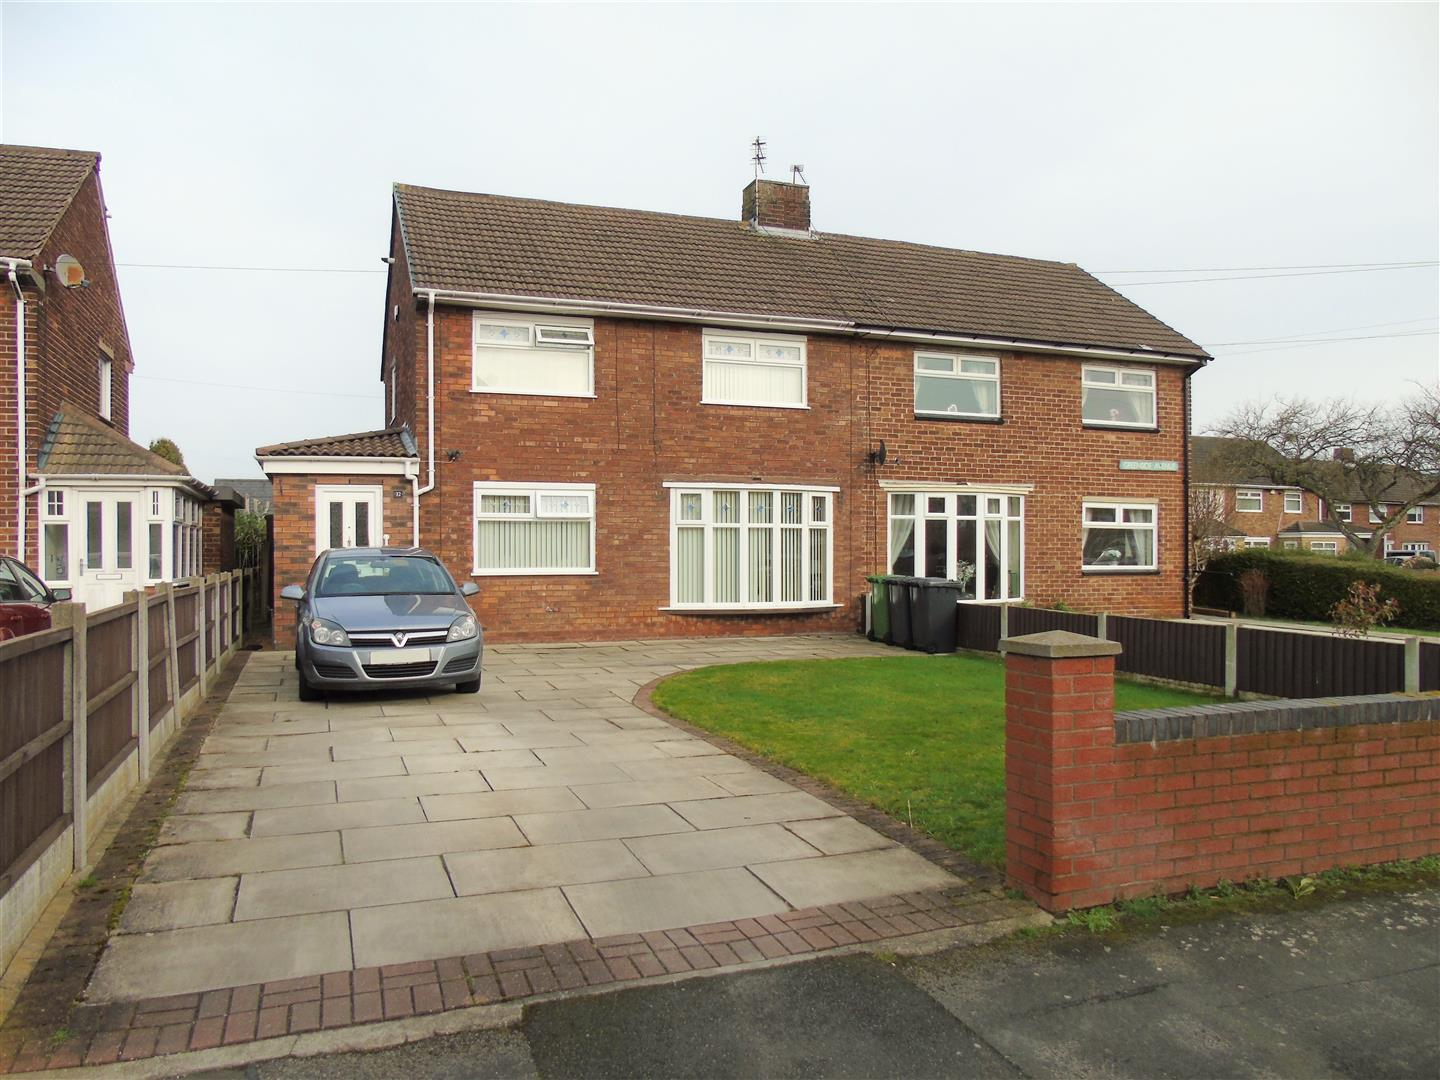 3 Bedrooms, House - Semi-Detached, Greenside Avenue, Aintree, Liverpool